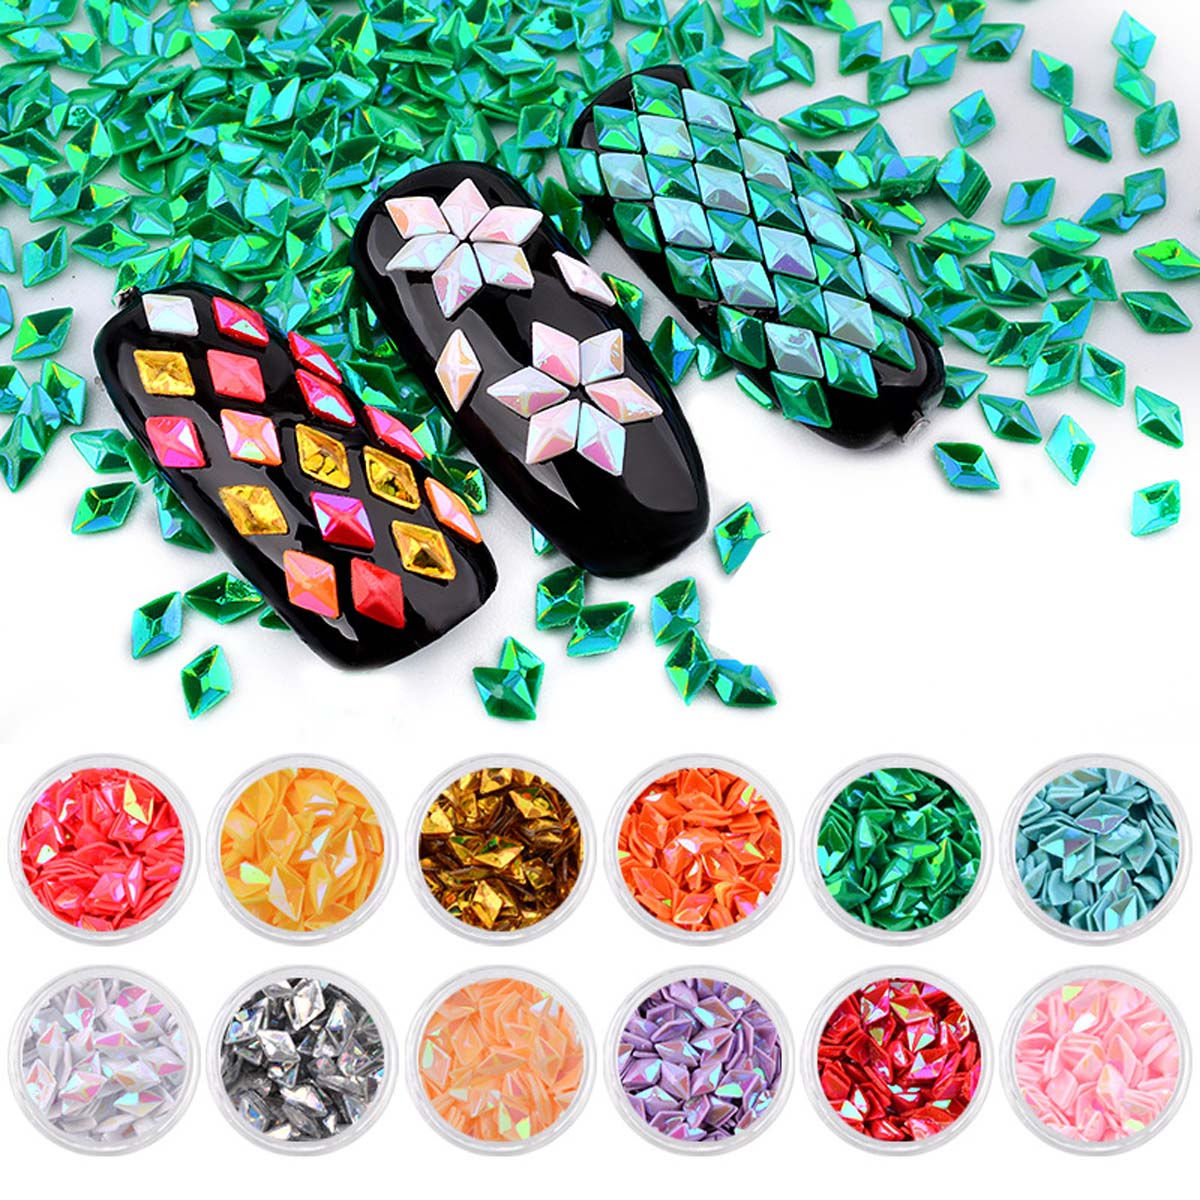 12 Pcs Nail Art Decoration Colorful Laser Rhombus Solid Nail Decorations Glitter 12 Colors Sequins Nail Jewelry Accessories